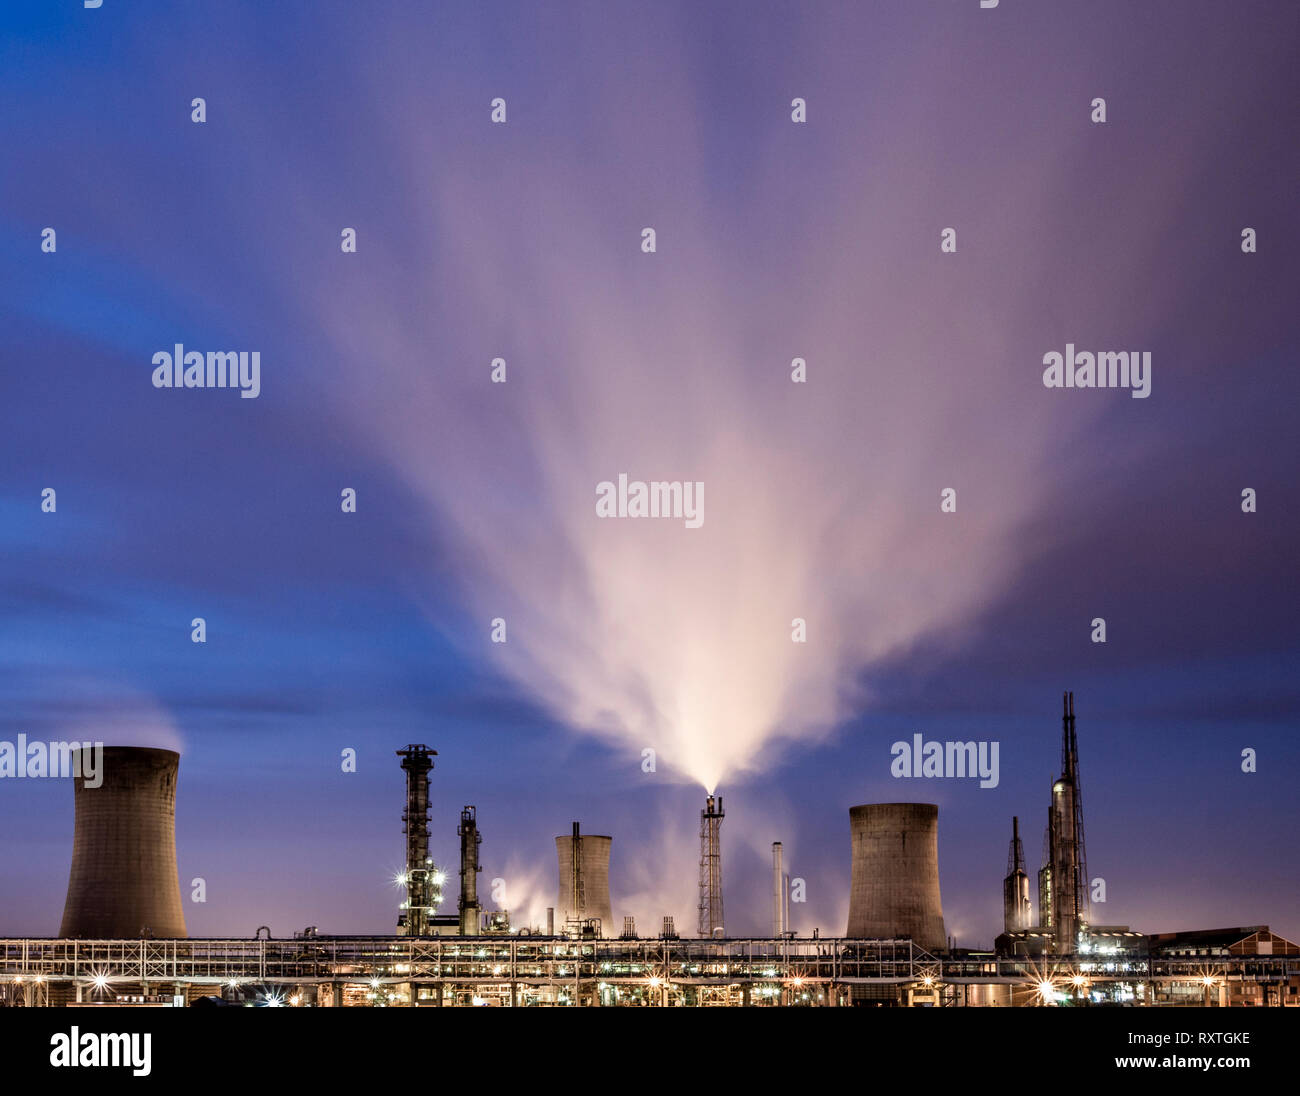 Chemical plant at the former ICI site in Billingham. UK - Stock Image